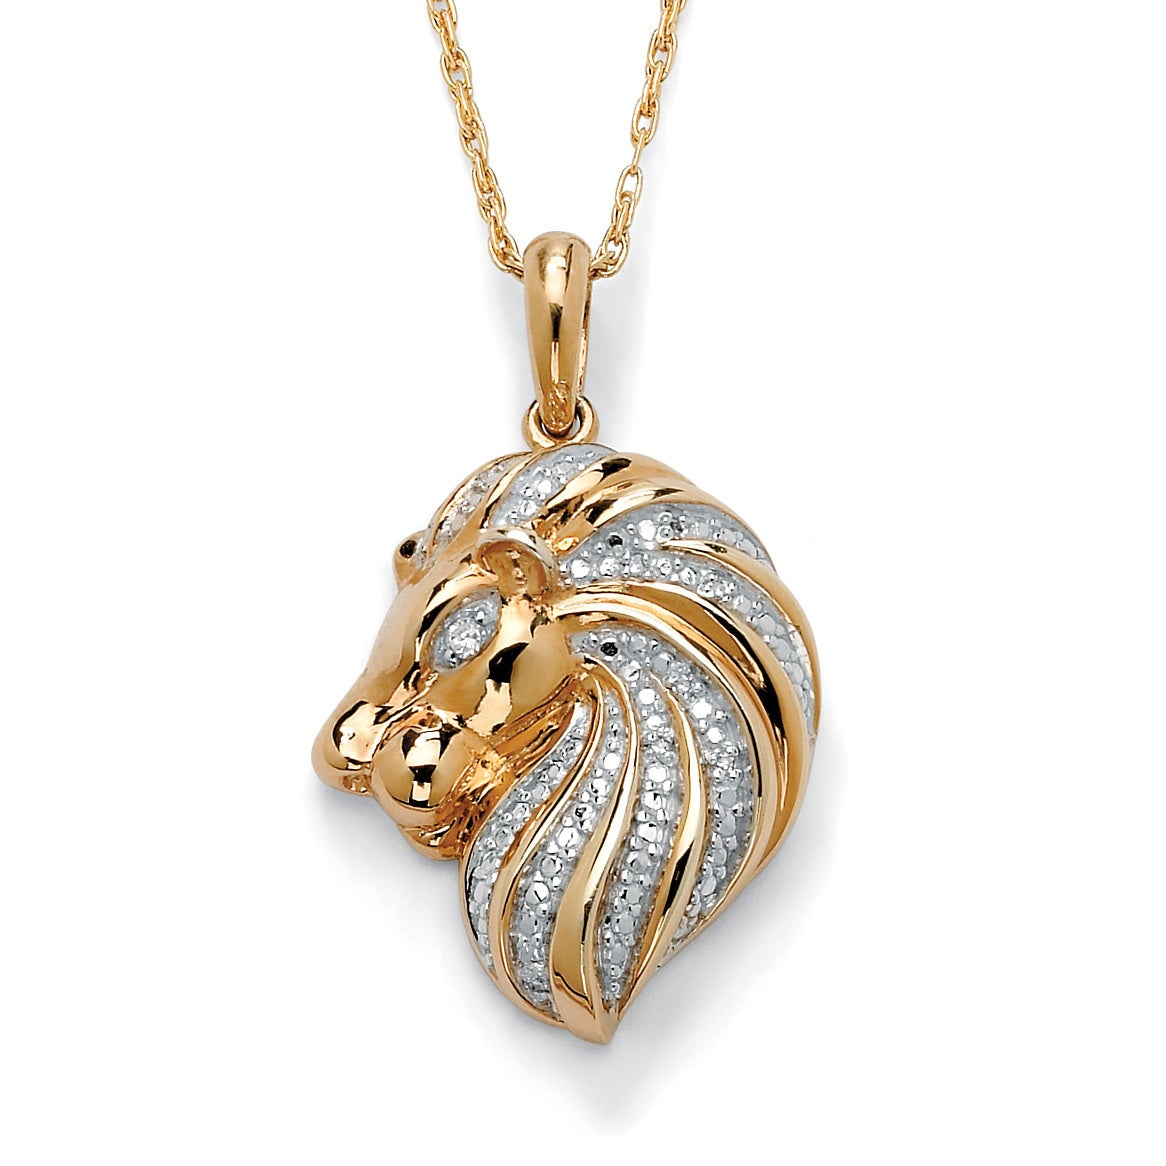 Shop diamond accent 18k gold over sterling silver lion pendant and shop diamond accent 18k gold over sterling silver lion pendant and chain on sale free shipping today overstock 7954434 aloadofball Image collections